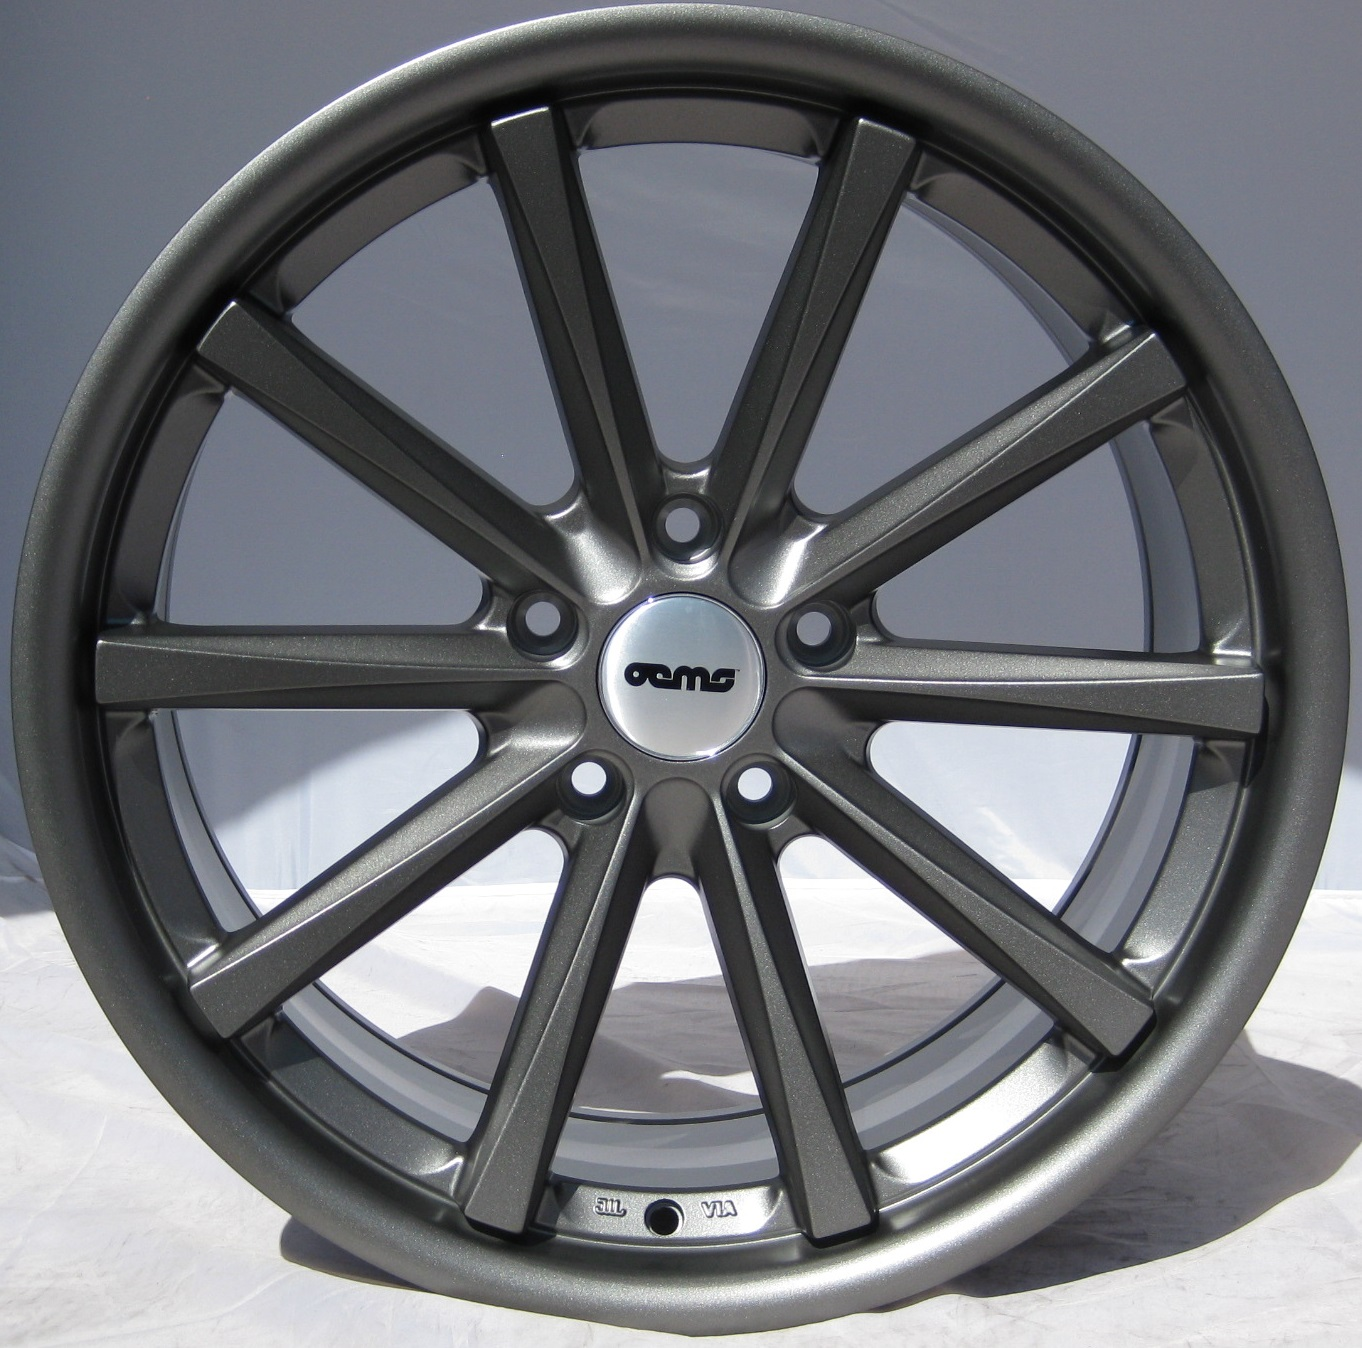 "NEW 19"" OEMS 110 CONCAVED ALLOYS IN MATT GUNMETAL, WIDER 9.5"" REAR"